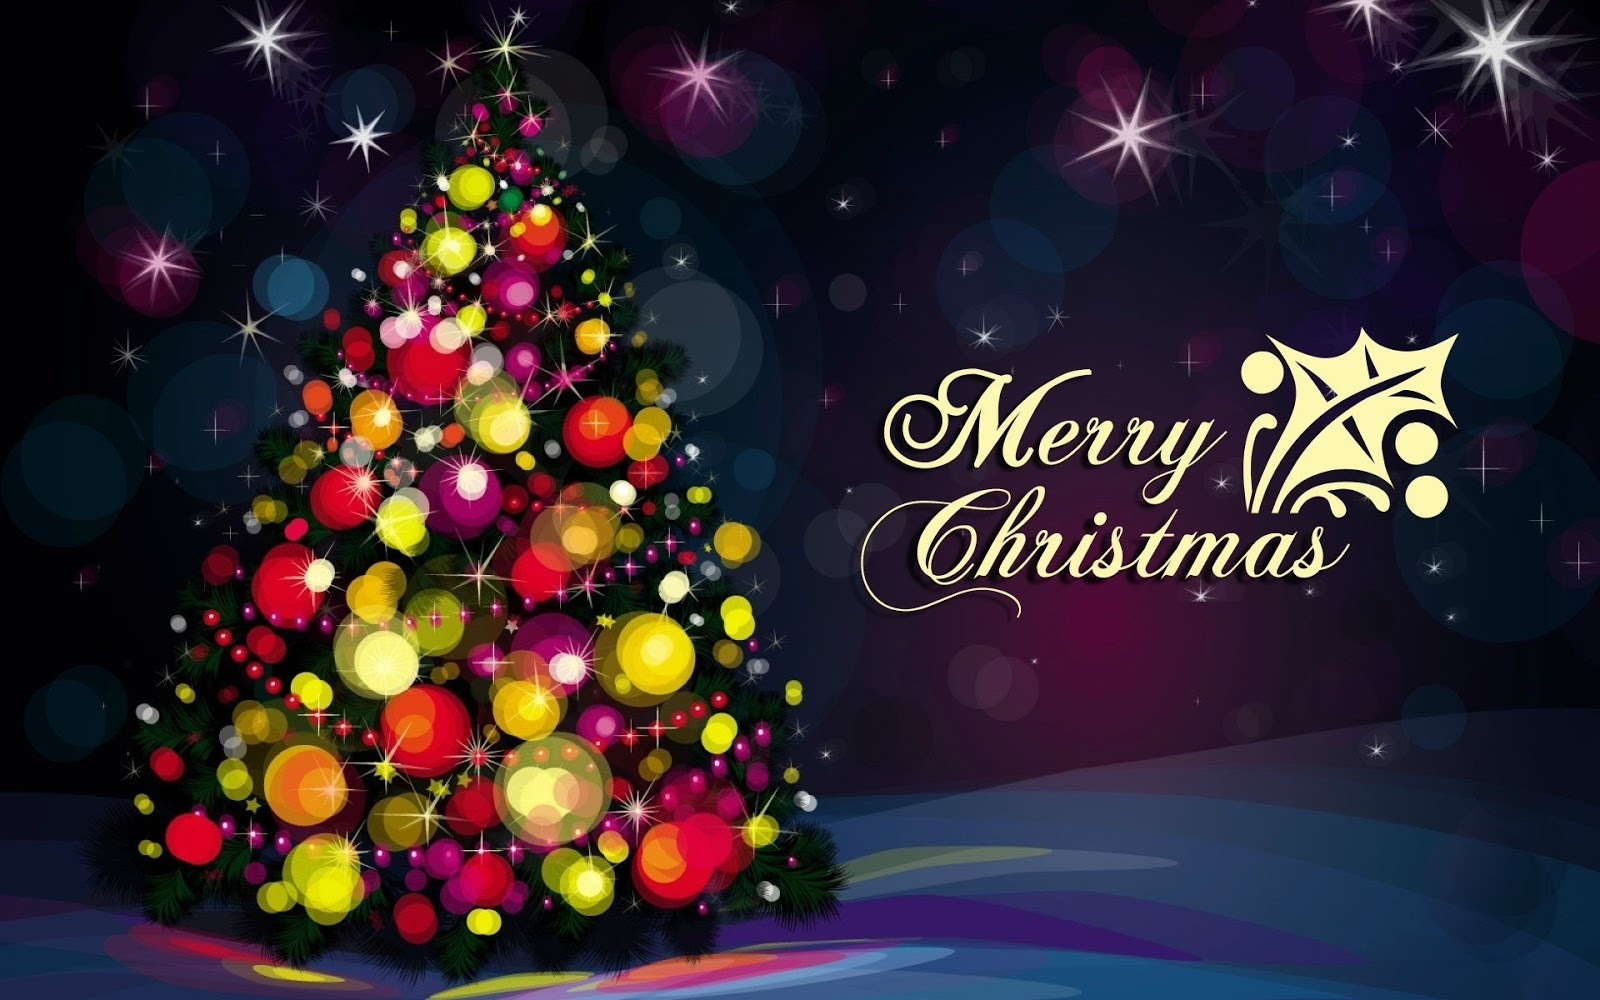 Hd Christmas Wallpapers 1080p Updated Merry Christmas Images 2018 Christmas Pictures